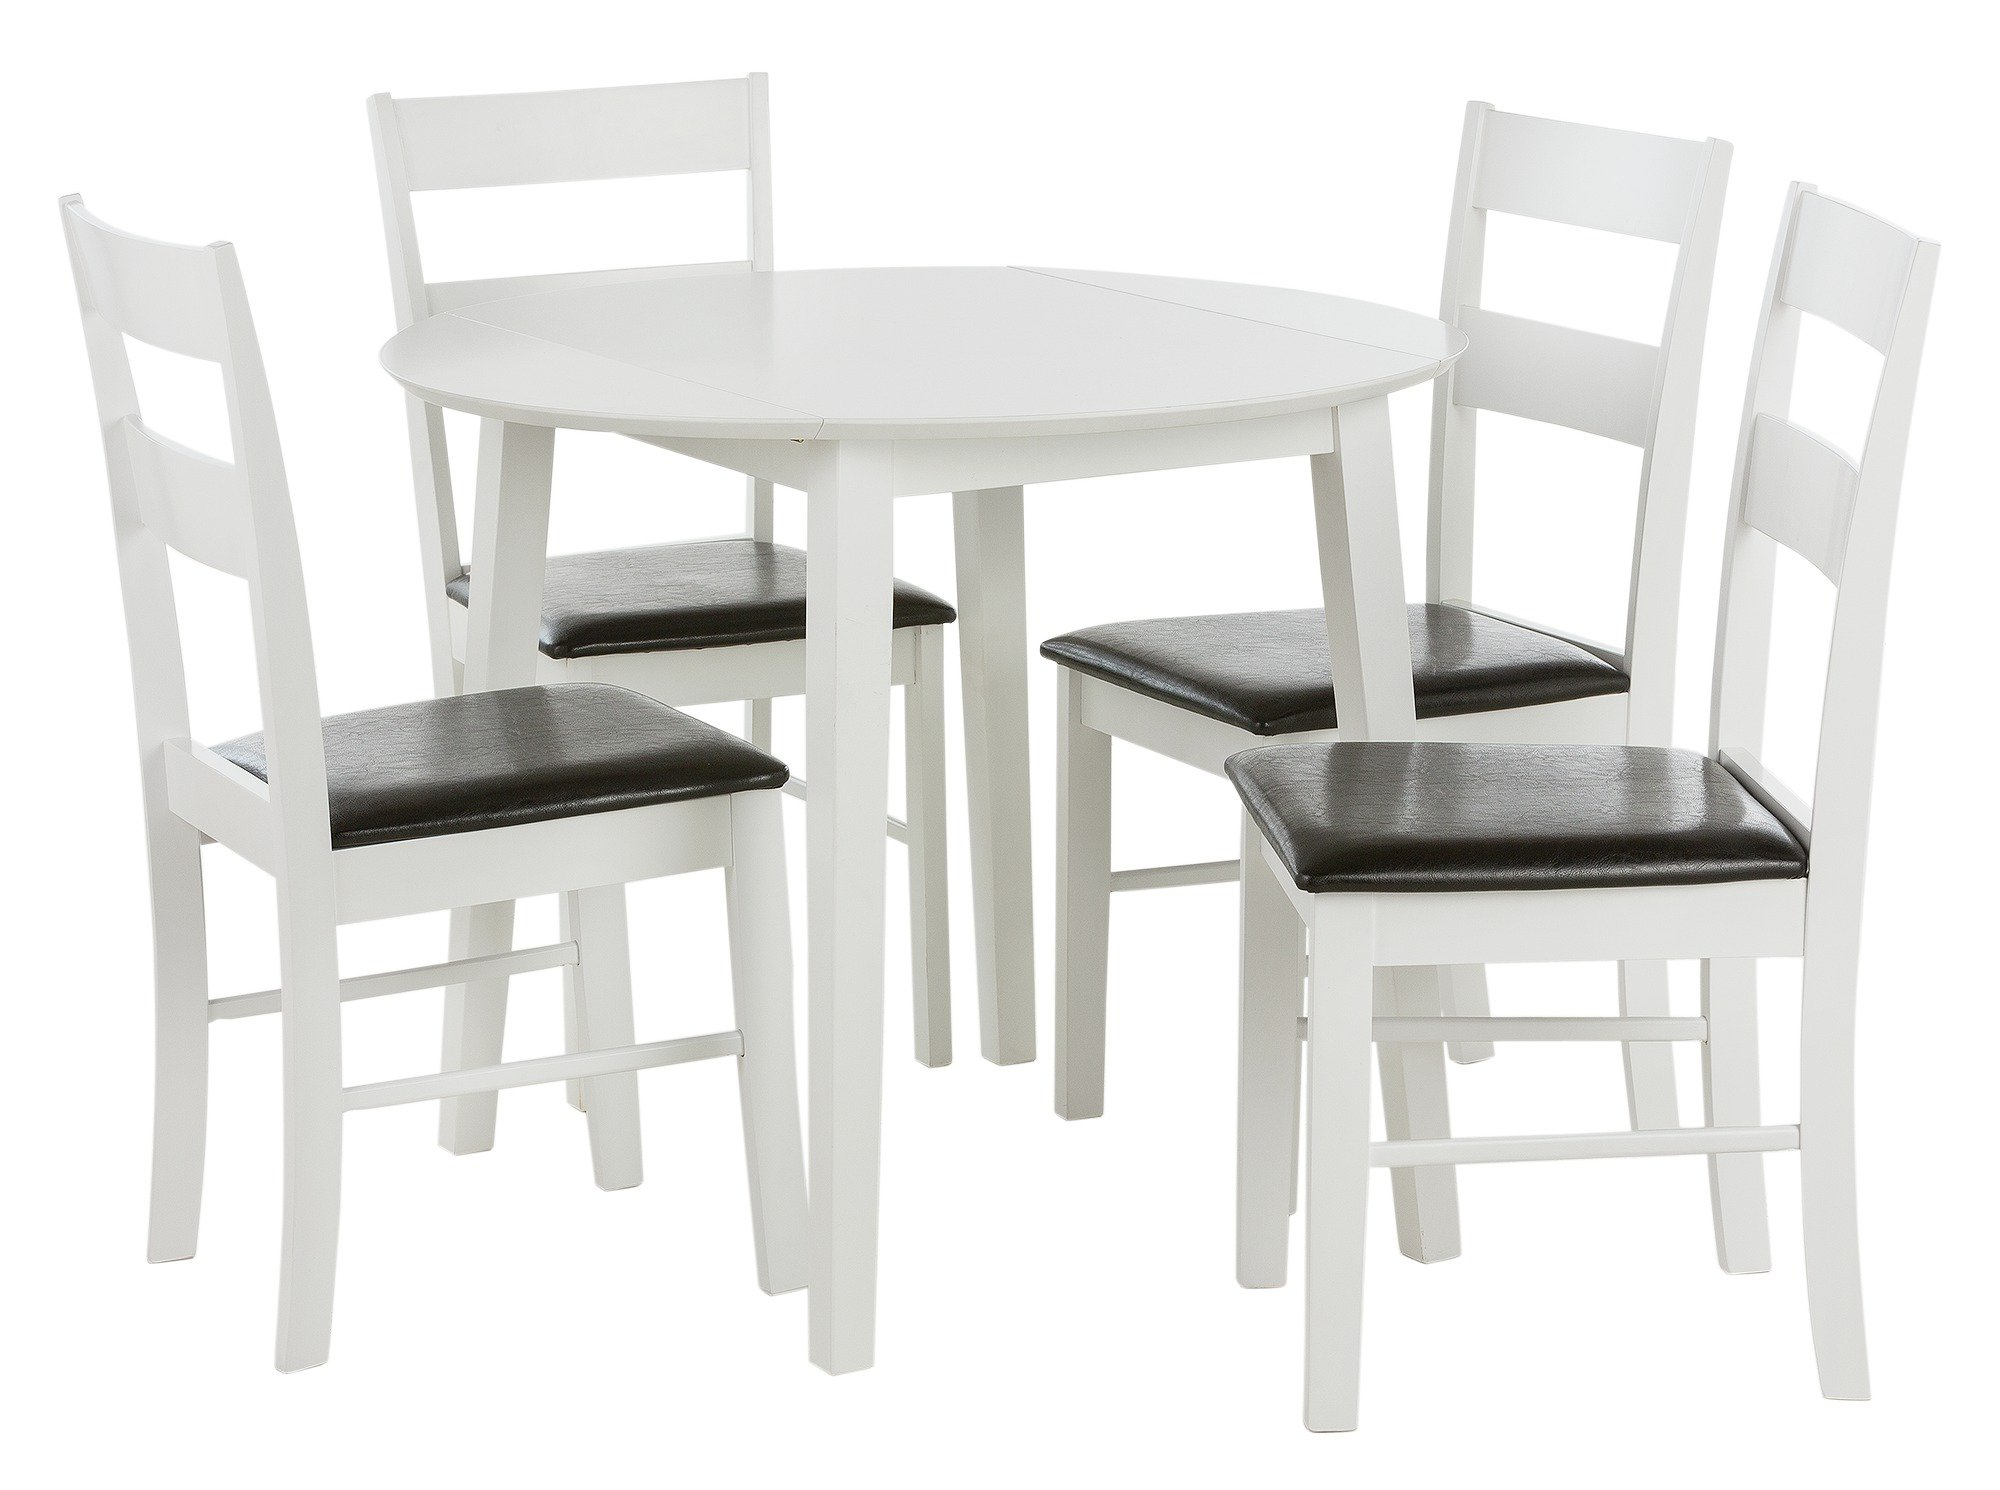 home wyton round drop leaf table 4 chairs review. Black Bedroom Furniture Sets. Home Design Ideas